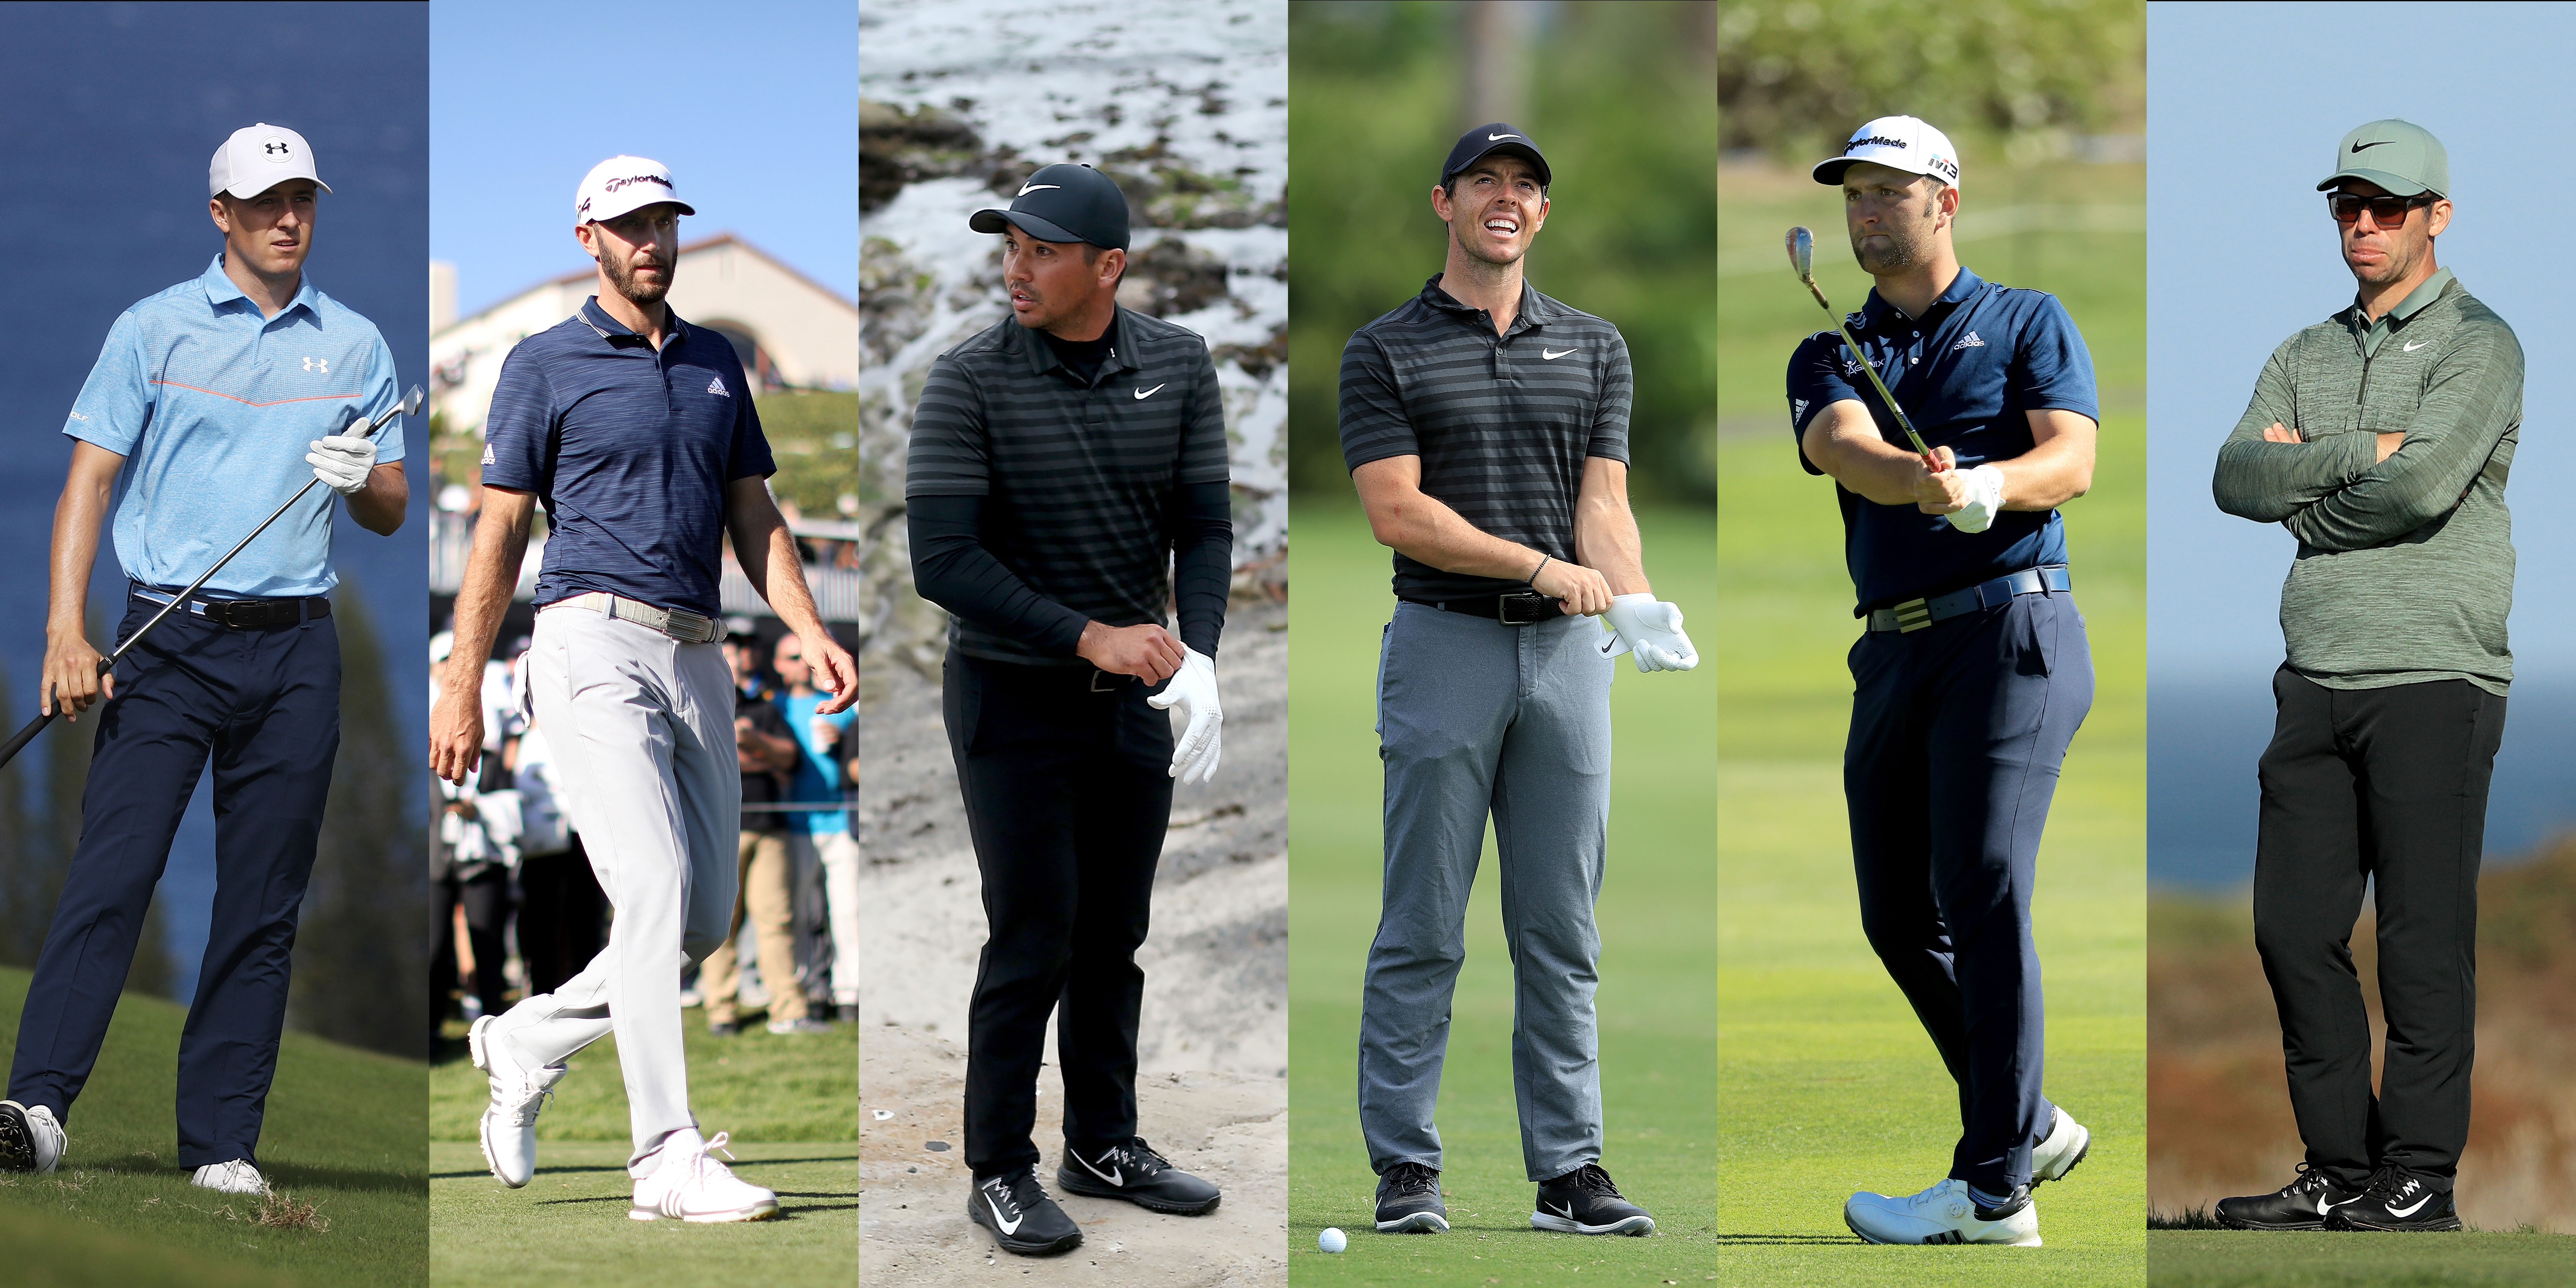 World golf match play betting line betting spread defined